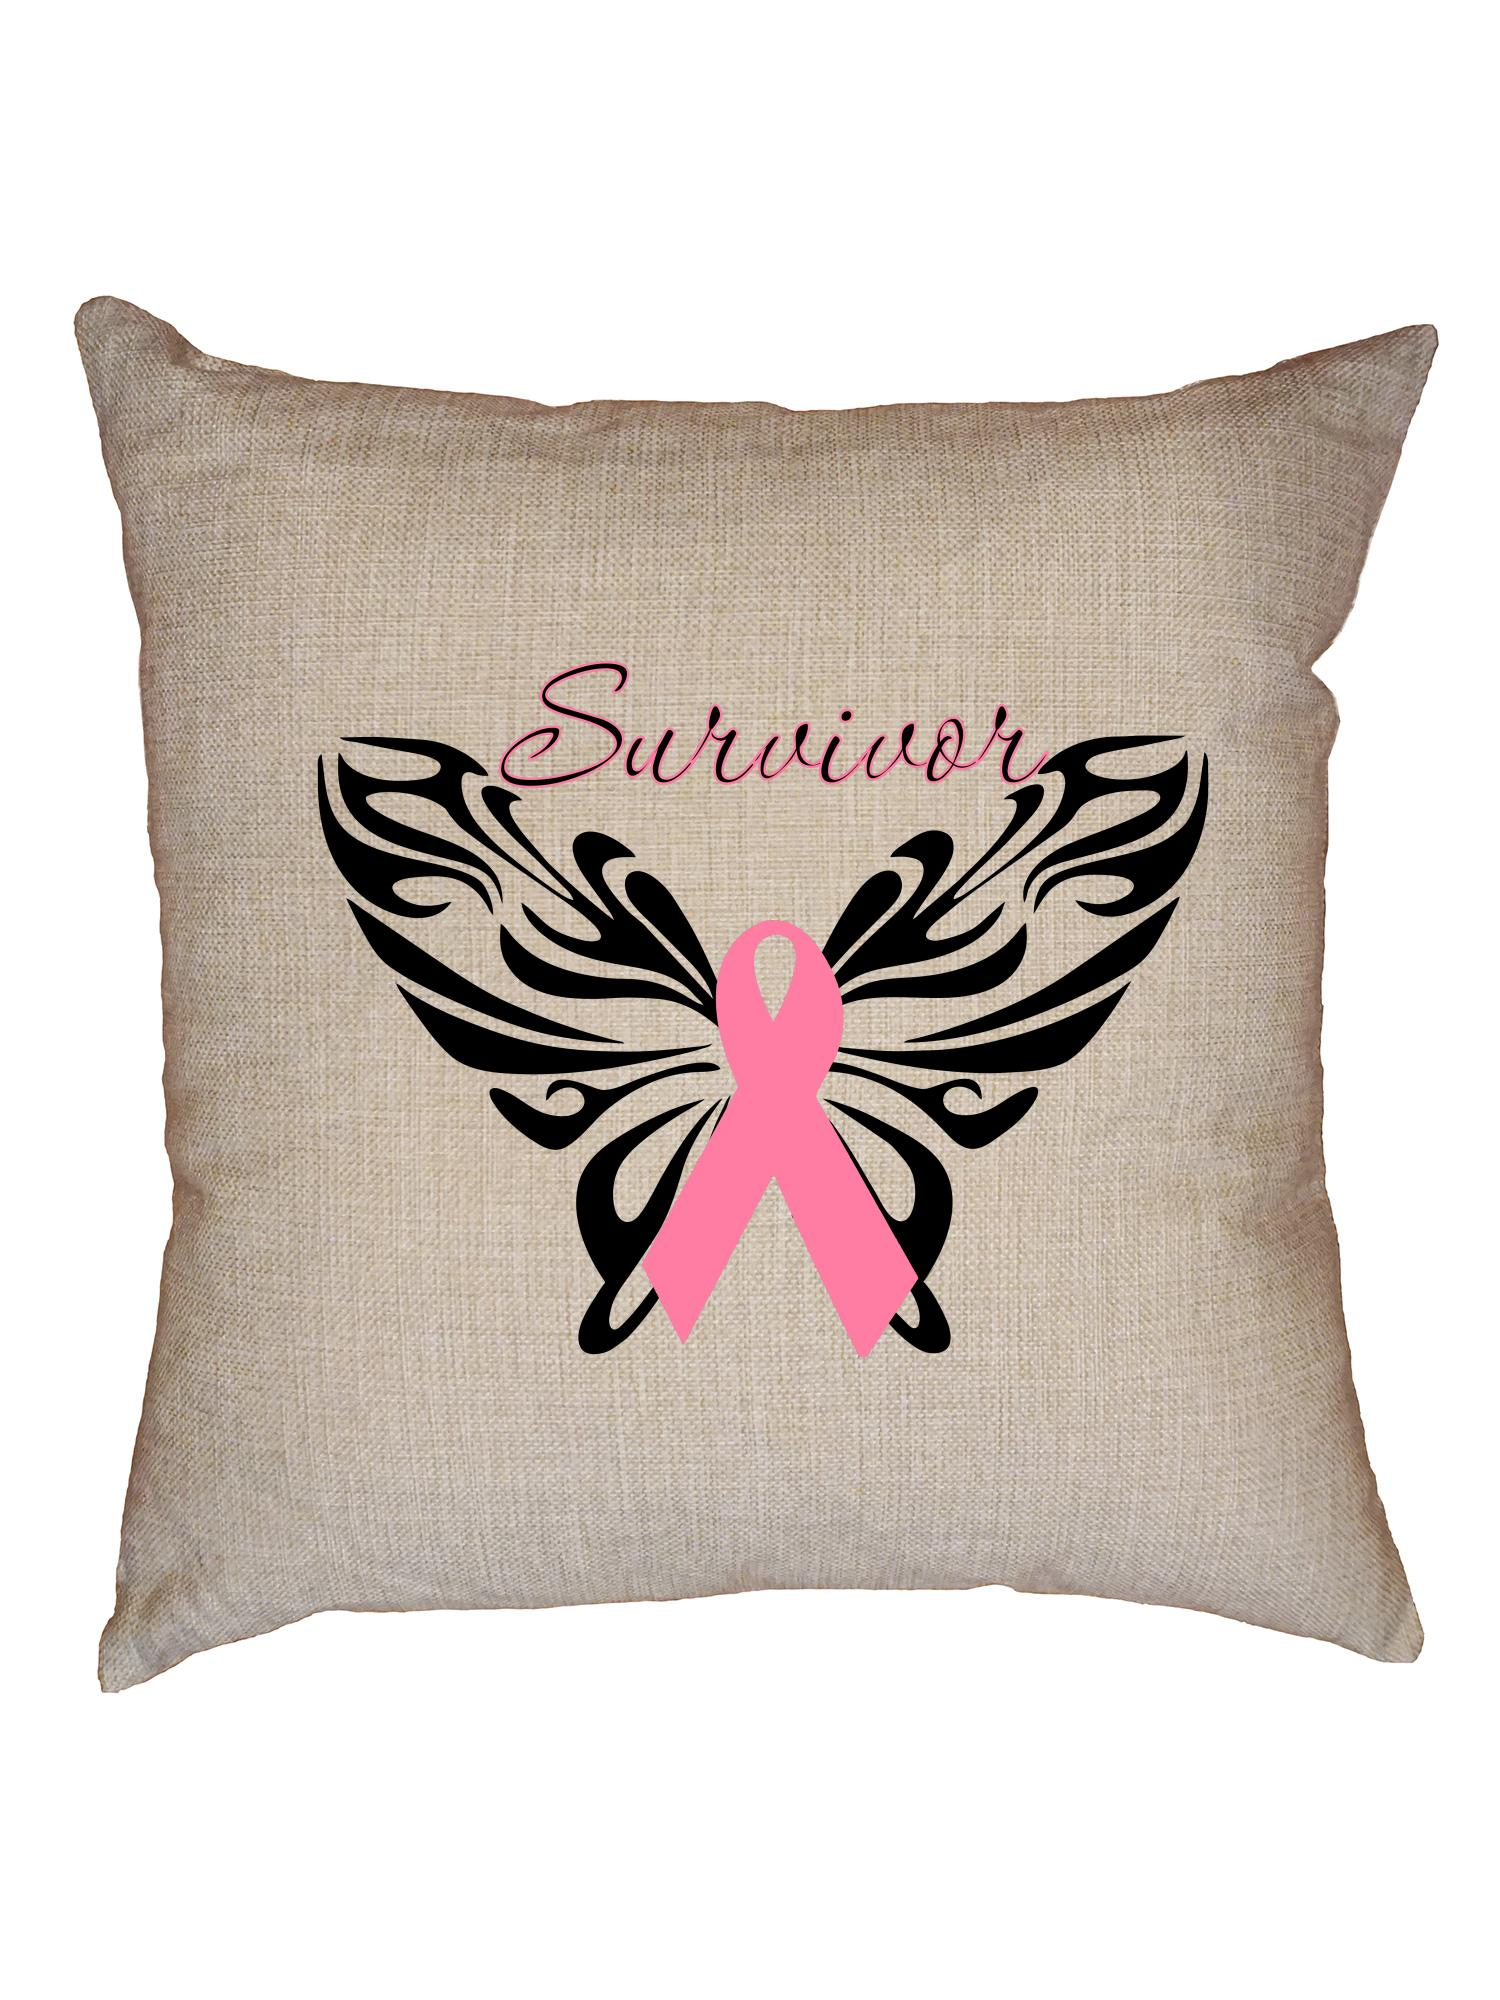 breast cancer survivor butterfly pink ribbon decorative linen throw cushion pillow case with insert